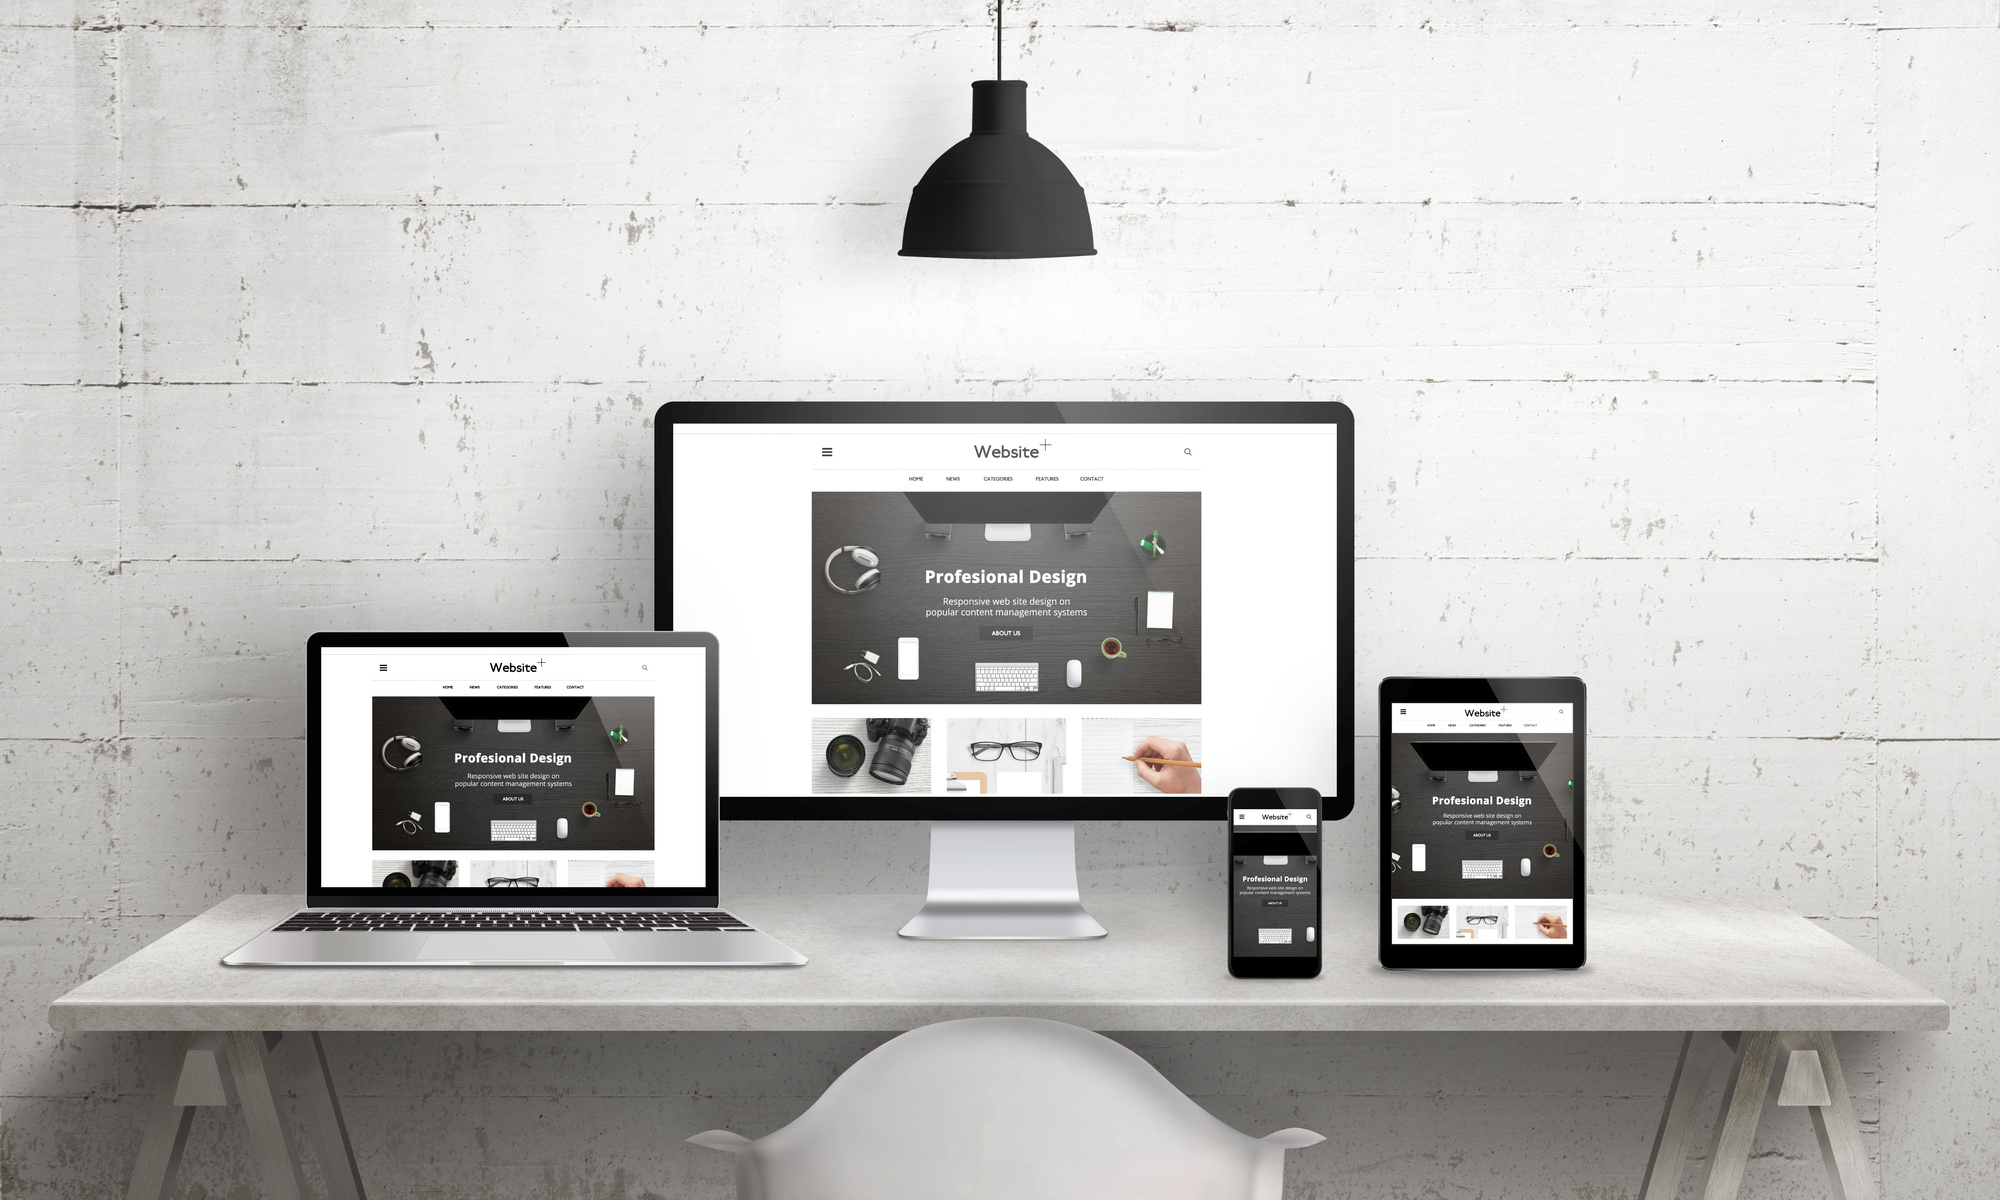 Why Clean Web Design is So Important